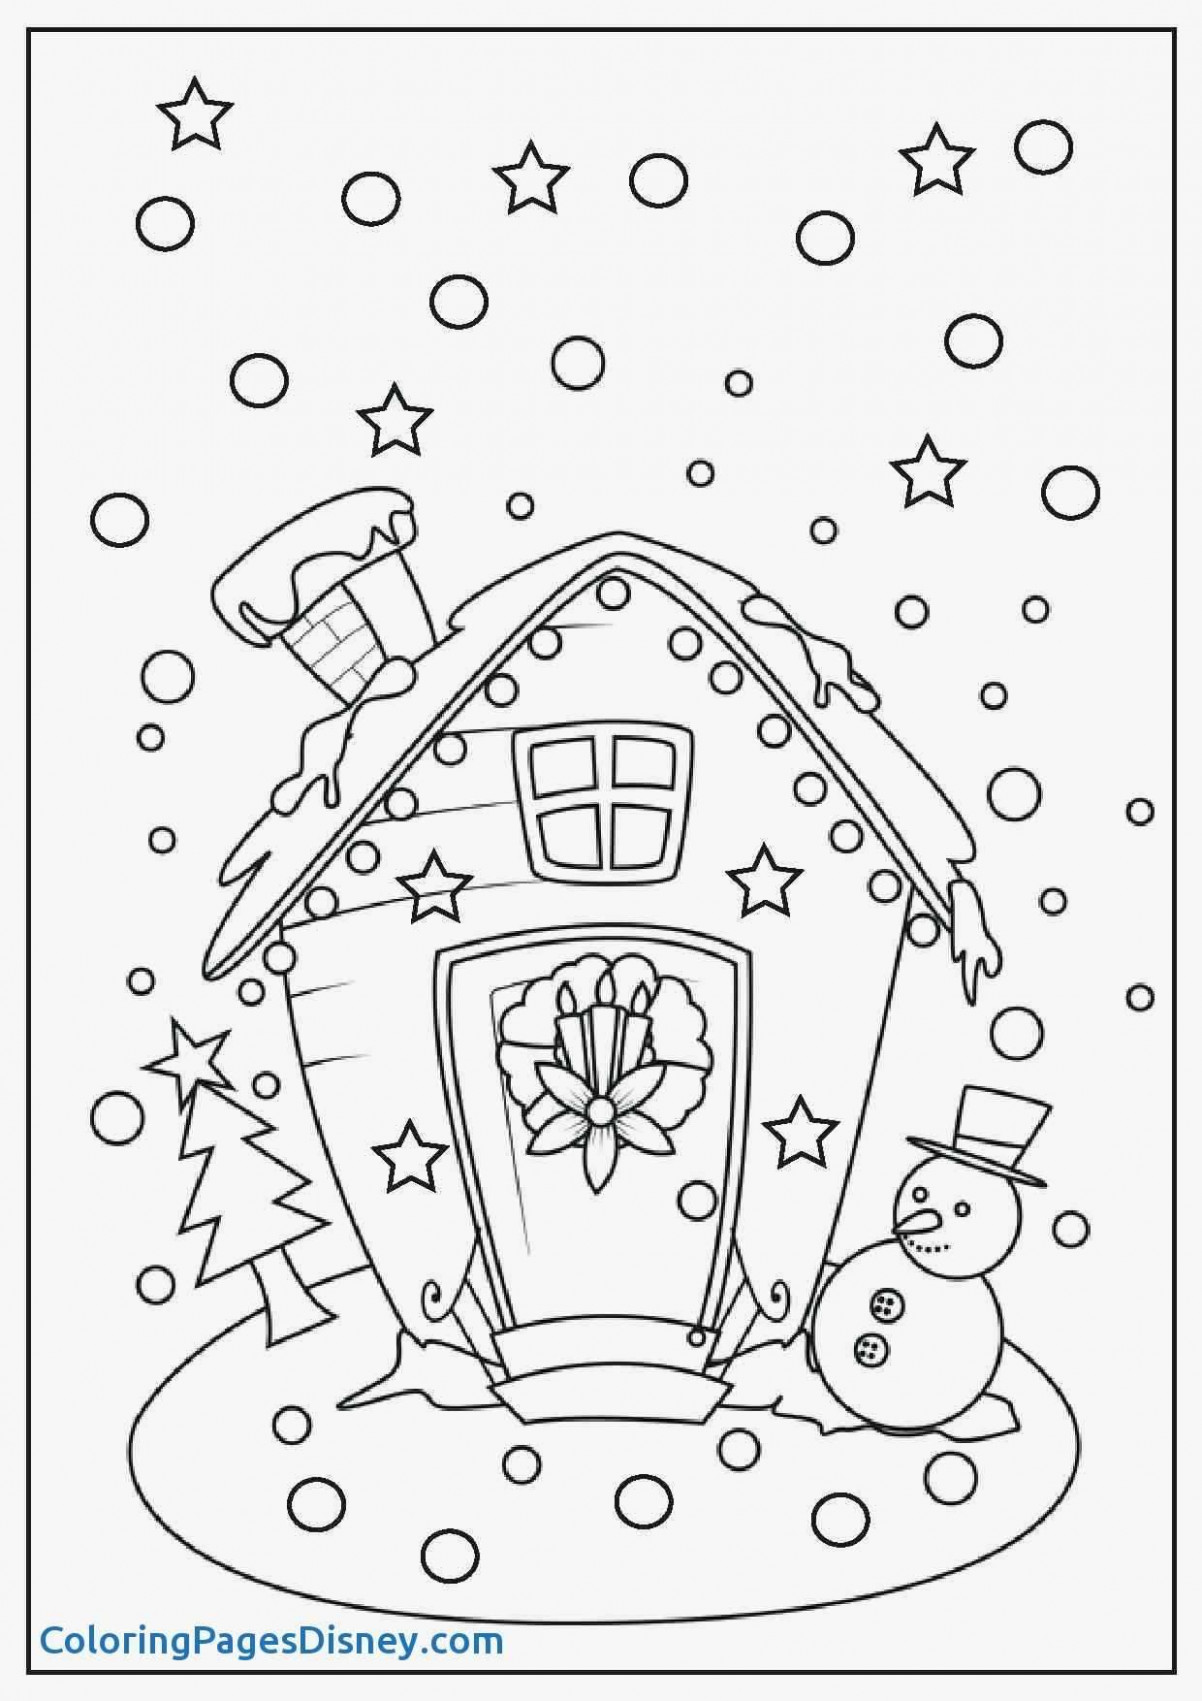 Lego Christmas Coloring Pages | Chrismast and New Year – Lego Christmas Coloring Pages